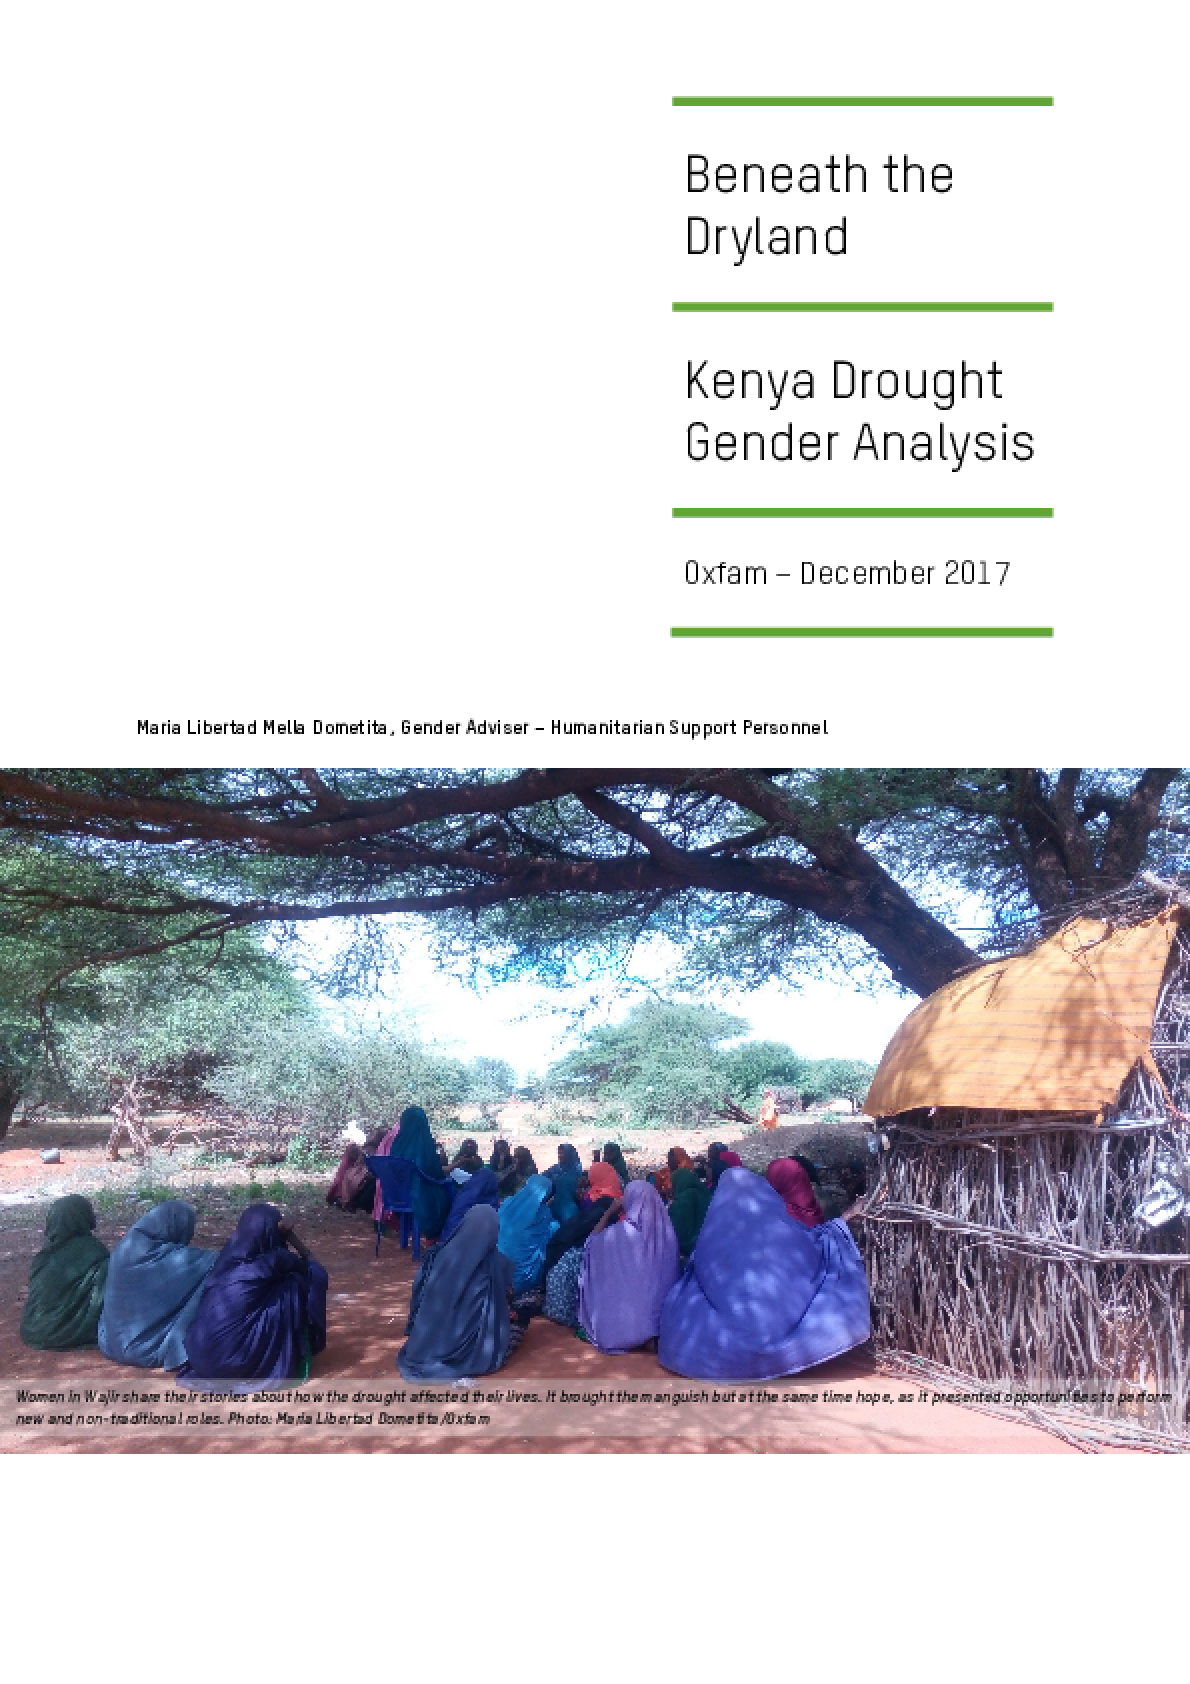 Beneath the Dryland: Kenya drought gender analysis